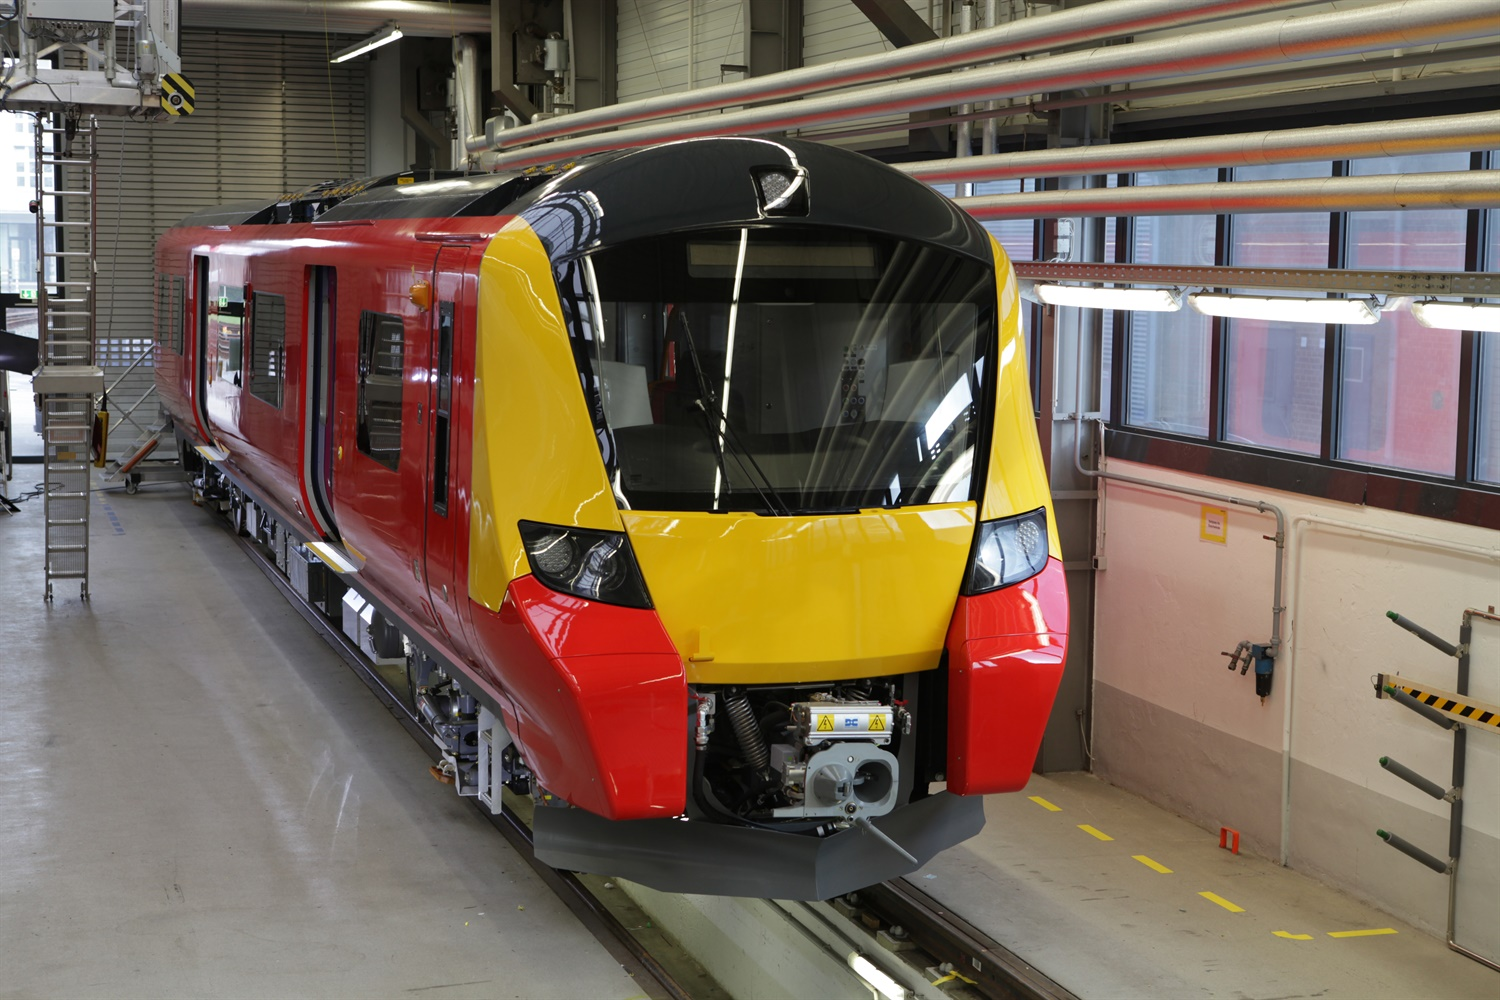 RMT slams 'crazy' First MTR decision to drop new £200m SWT trains